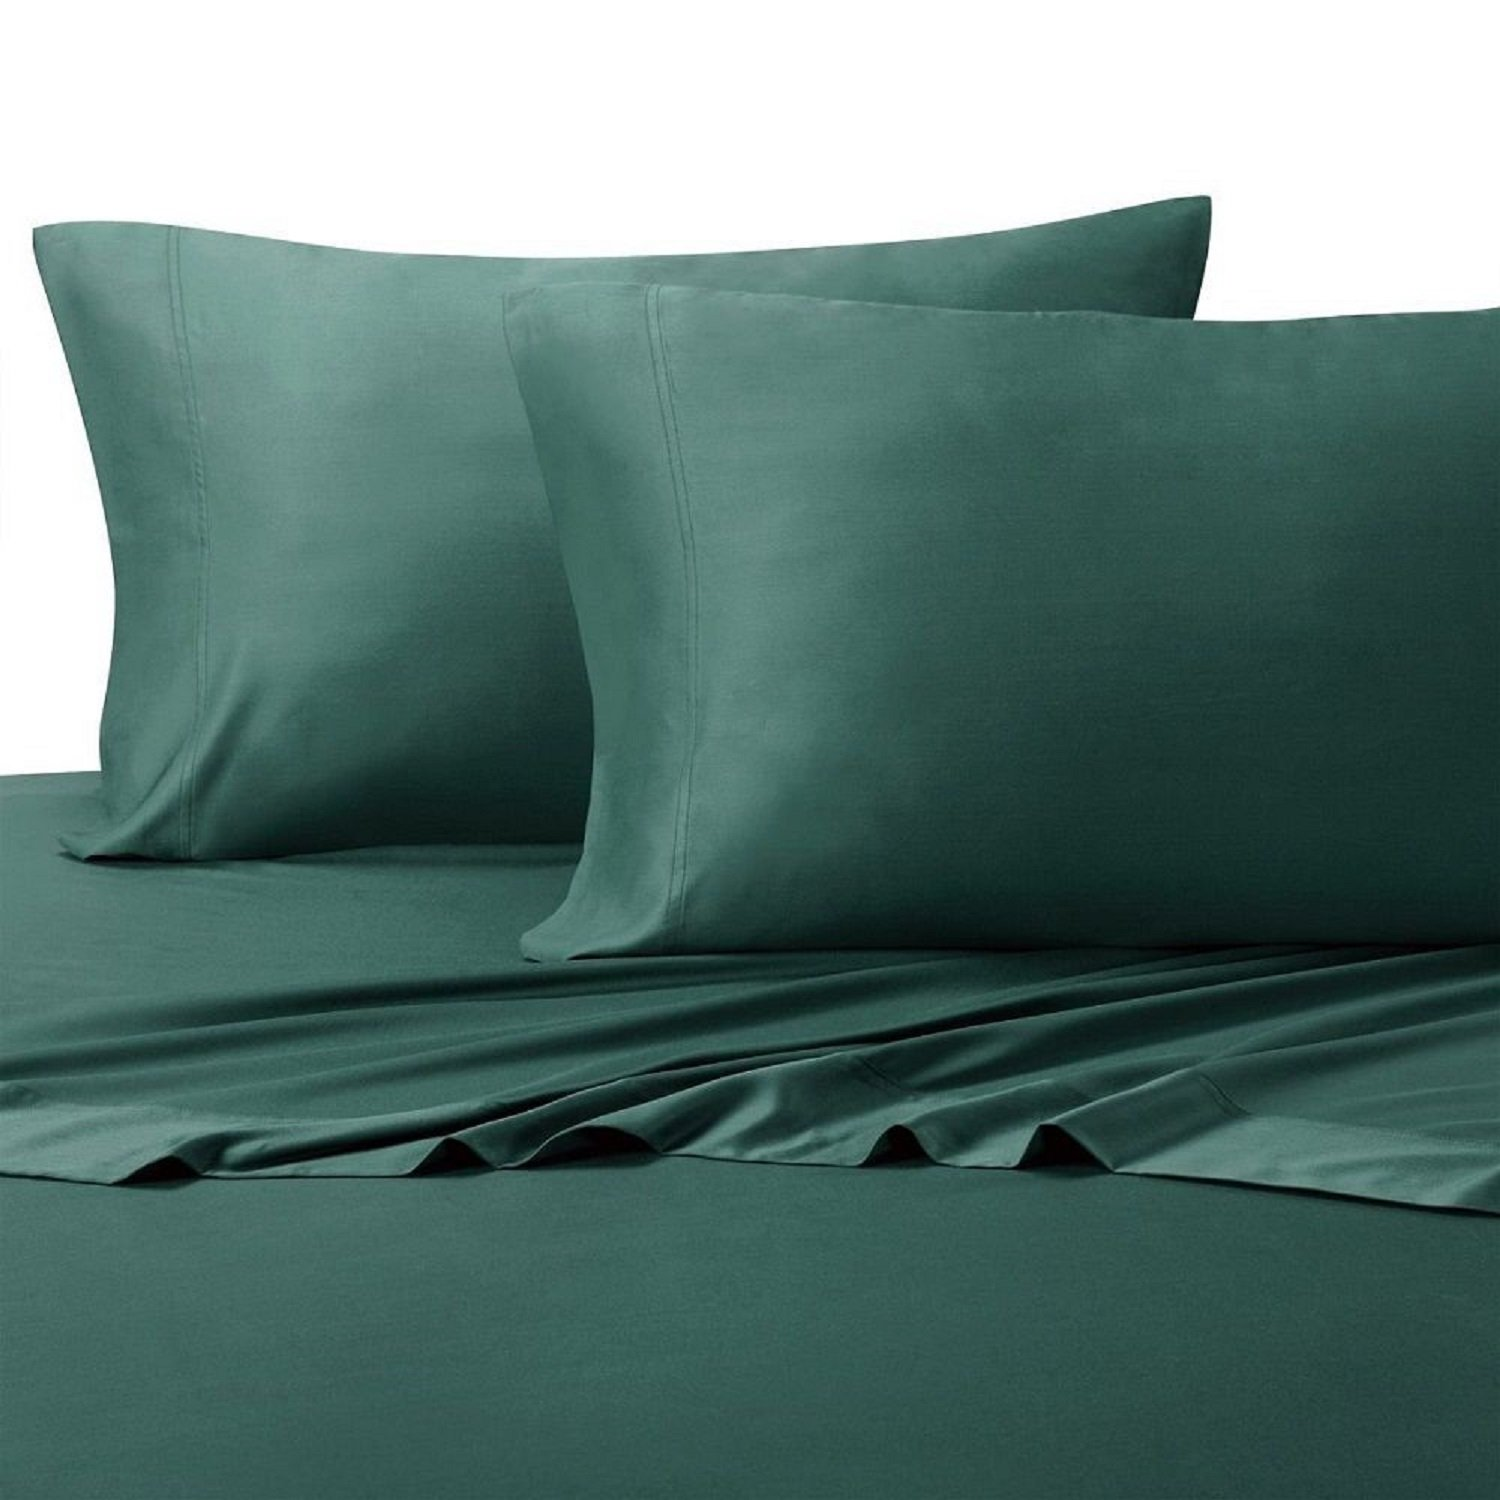 rayon comfort piece comforter king hotel pc bamboo sheets organic fiber sheet set com angeloferrer from